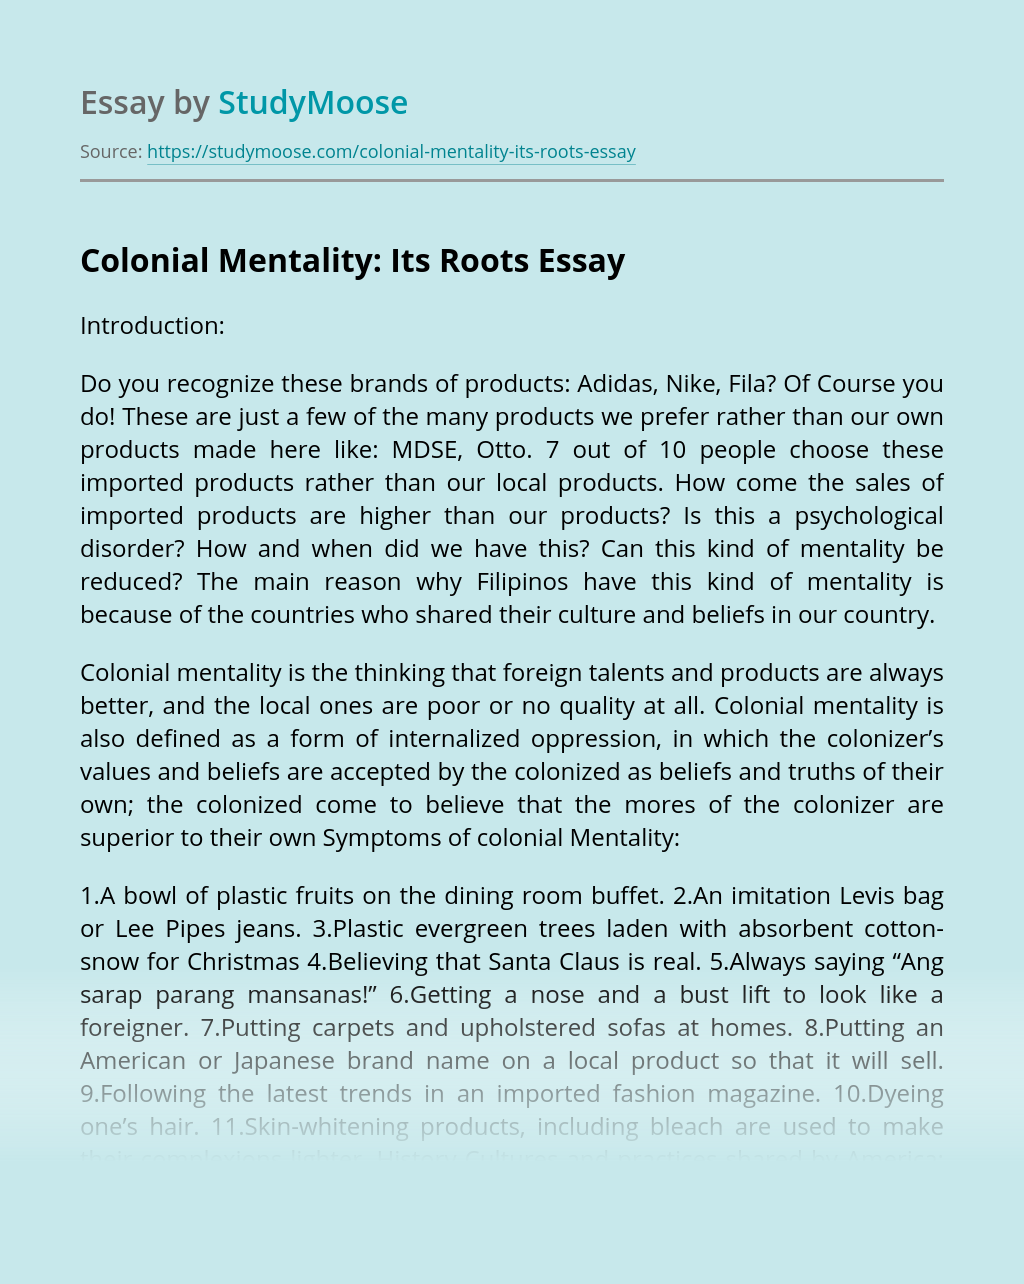 Colonial Mentality: Its Roots